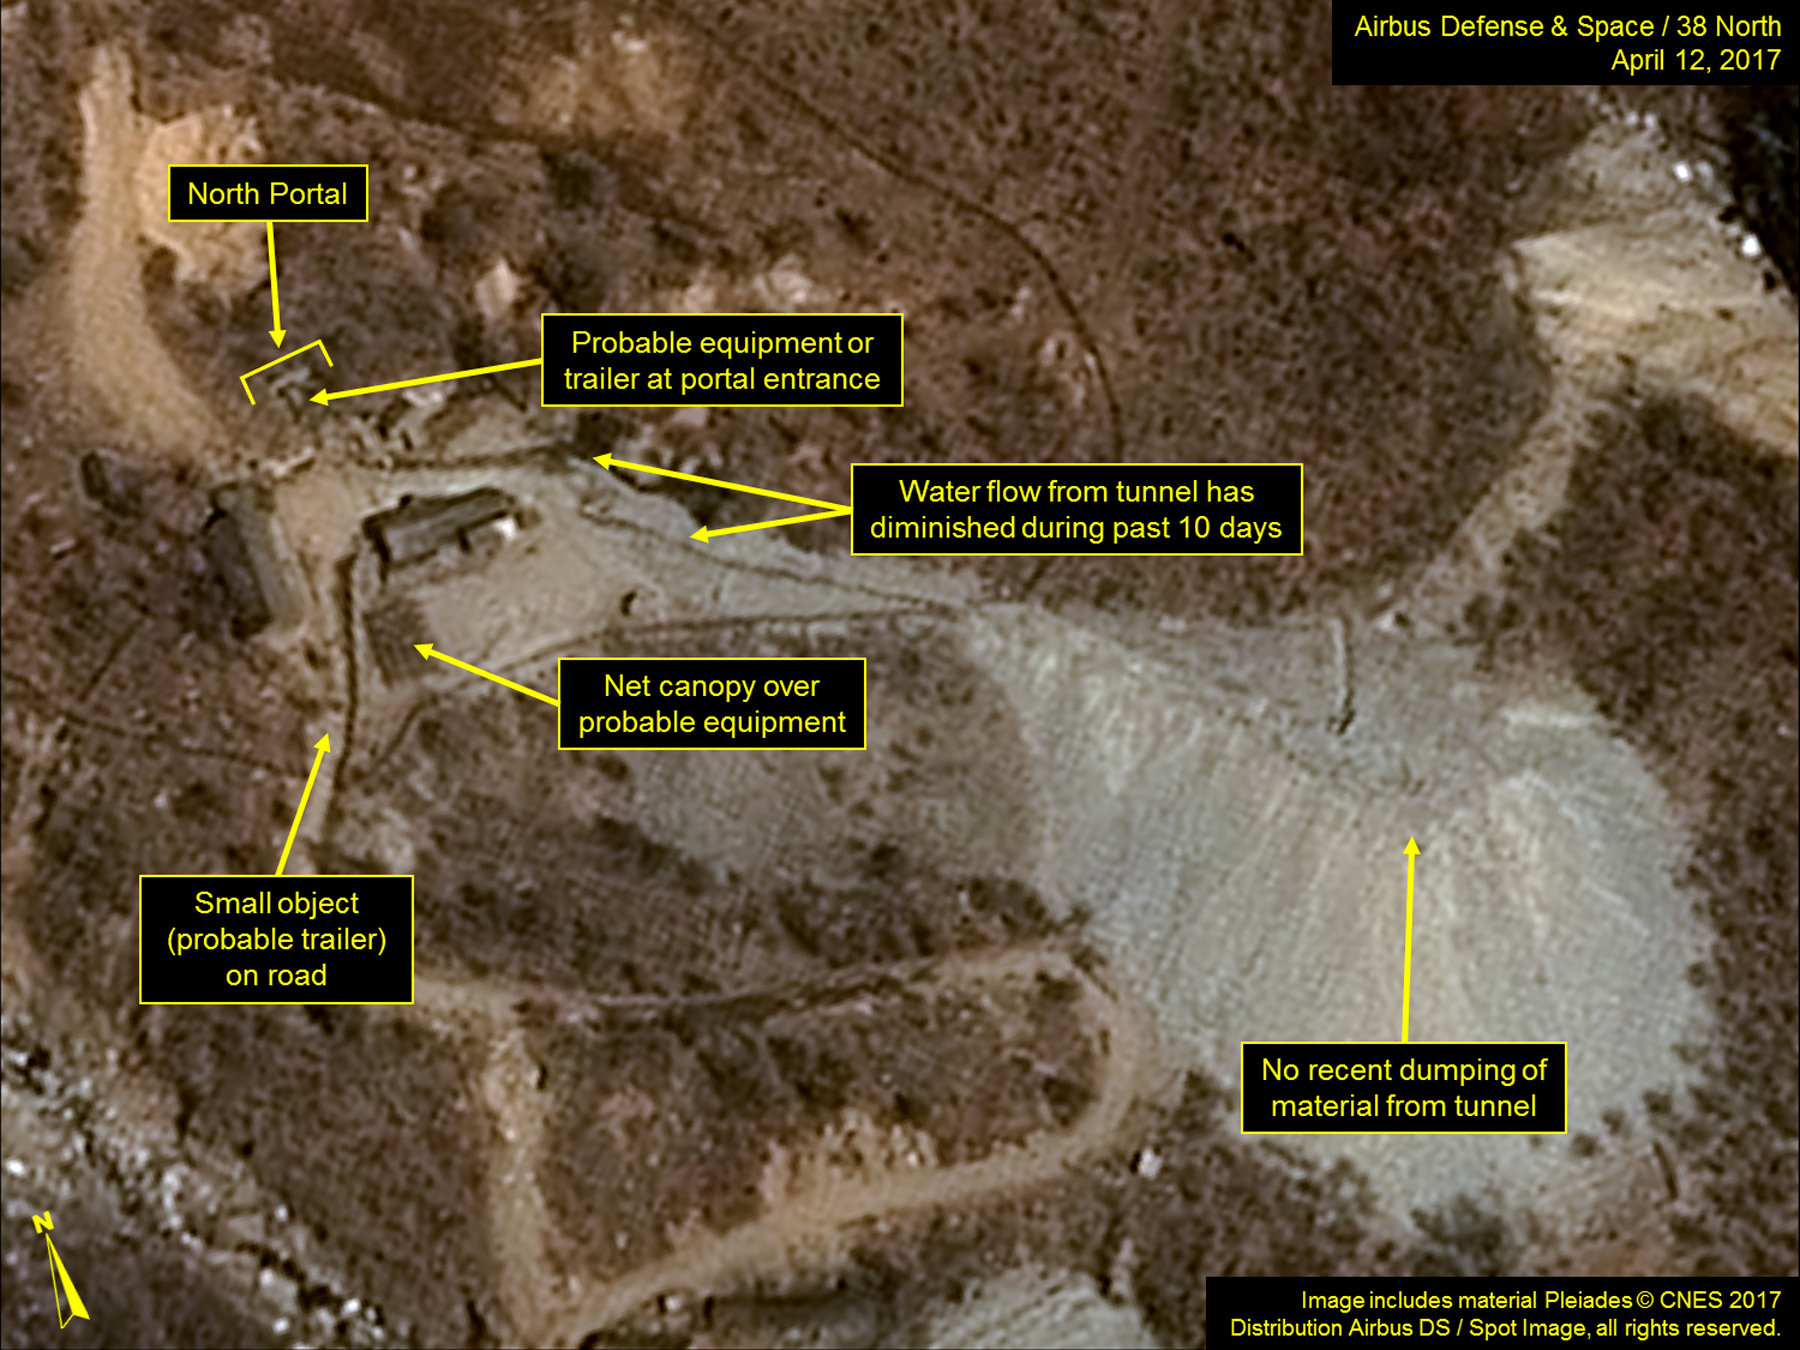 North Korea's Punggye-ri Nuclear Test Site is seen in commercial satellite imagery taken April 12, 2017. Image includes material Pleiades (c) CNES 2017. Distribution Airbus DS/Spot Image, all rights reserved. Credit: Airbus Defense & Space and 38 North/Handout via Reuters